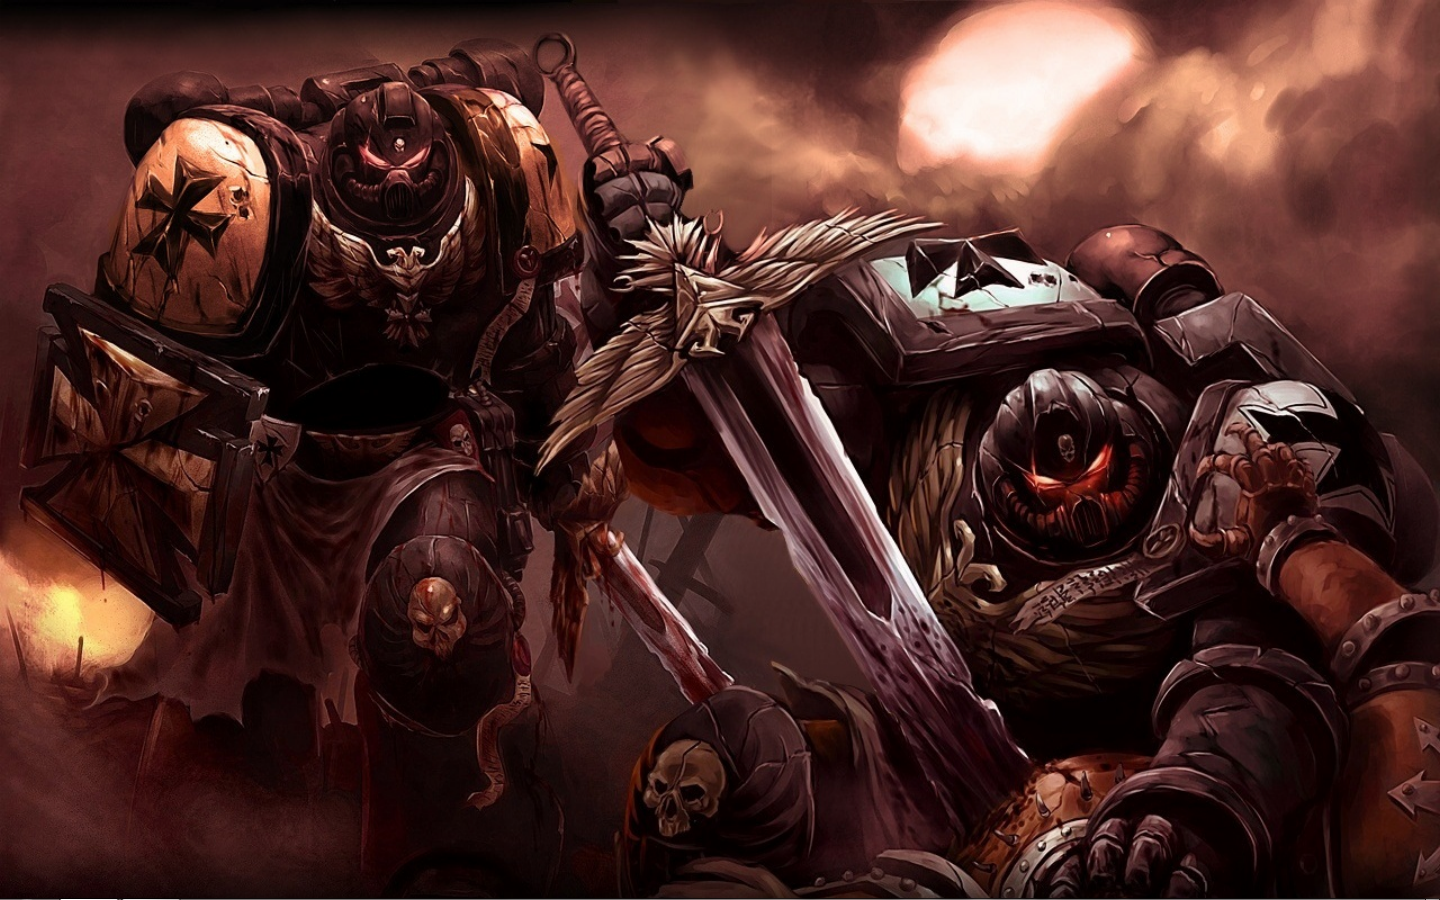 Warhammer 40K Wallpaper 1440x900 Warhammer 40K Space Marines 1440x900